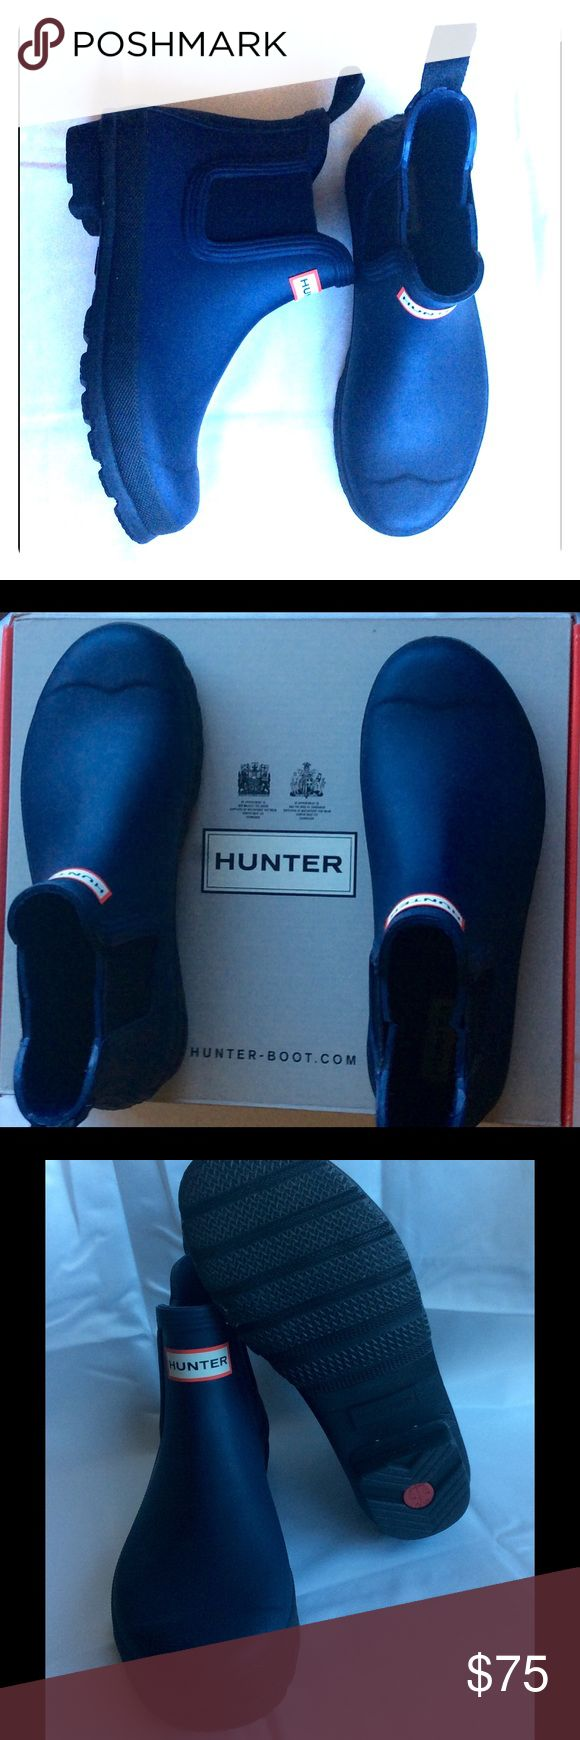 HUNTER Chelsea Rain Ankle Boots in Midnight, US 8 Sturdy rubber boots to protect your feet from whatever nature throws at you. Never worn. Hunter Boots Shoes Winter & Rain Boots